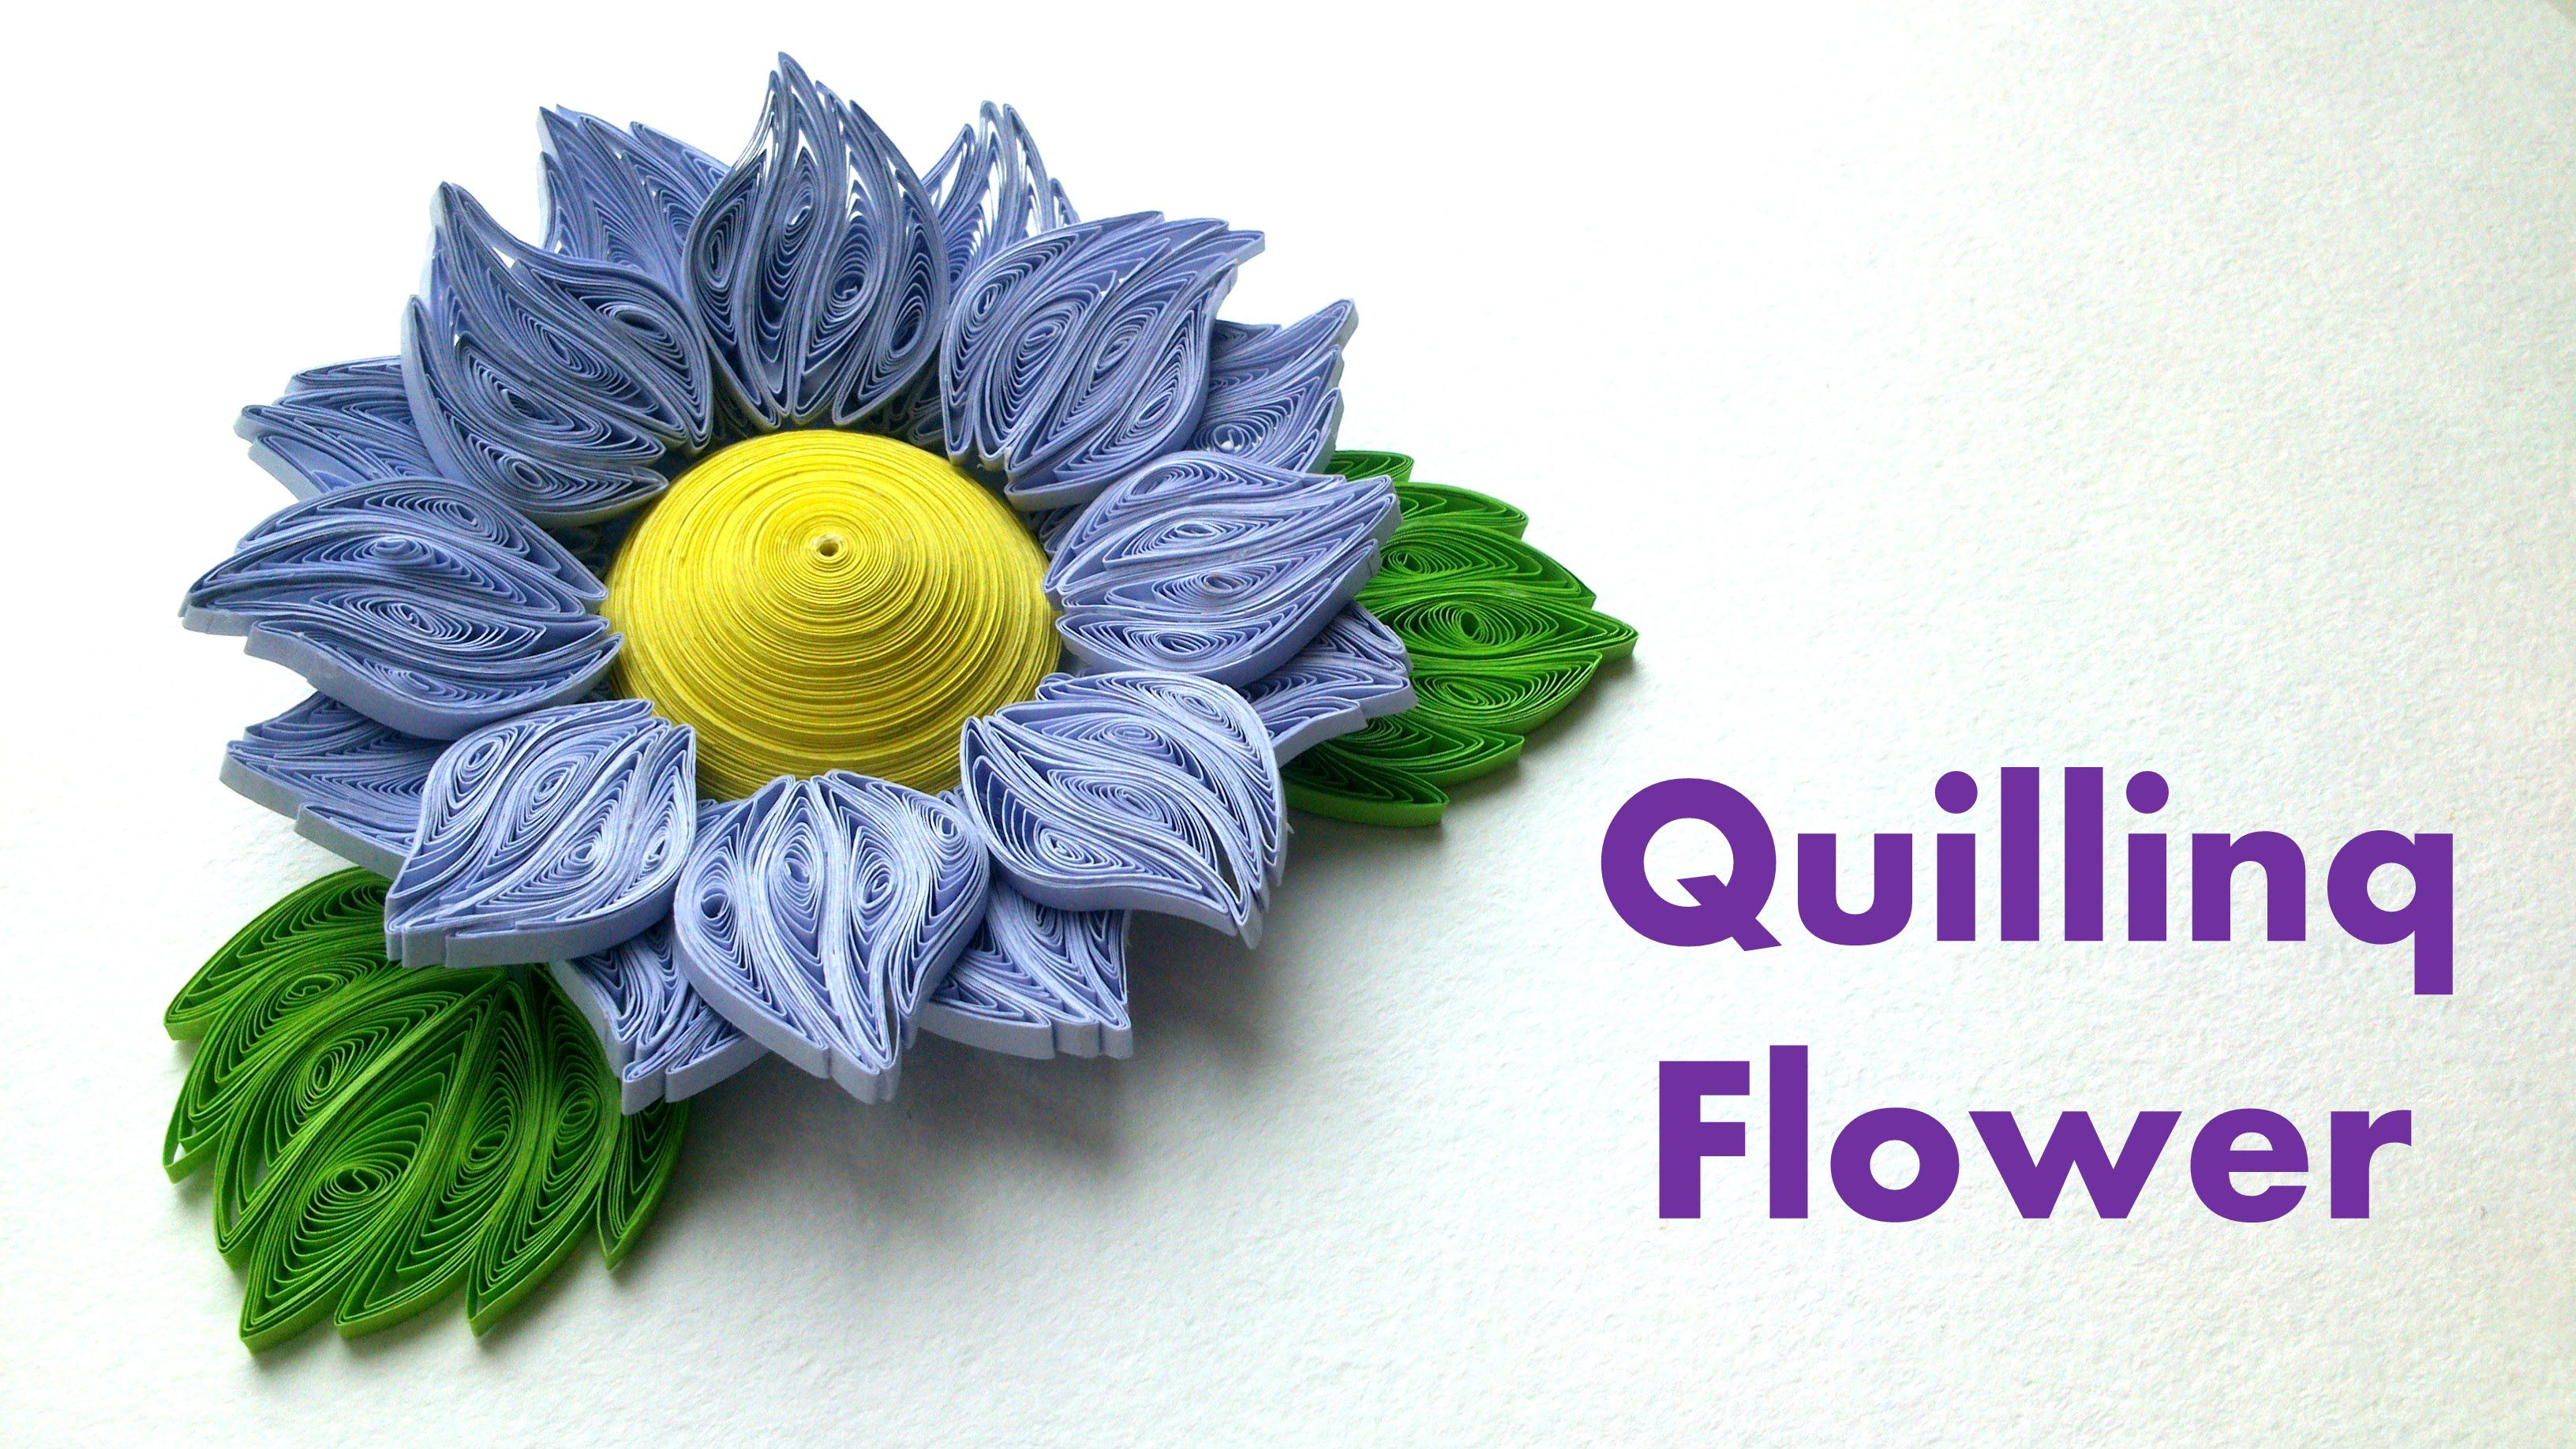 Subscribe To A Video Channel On Youtube Https Www Youtube Com C Creativepaper Quilling Flowers Tutorial Quilling Techniques Quilling Designs